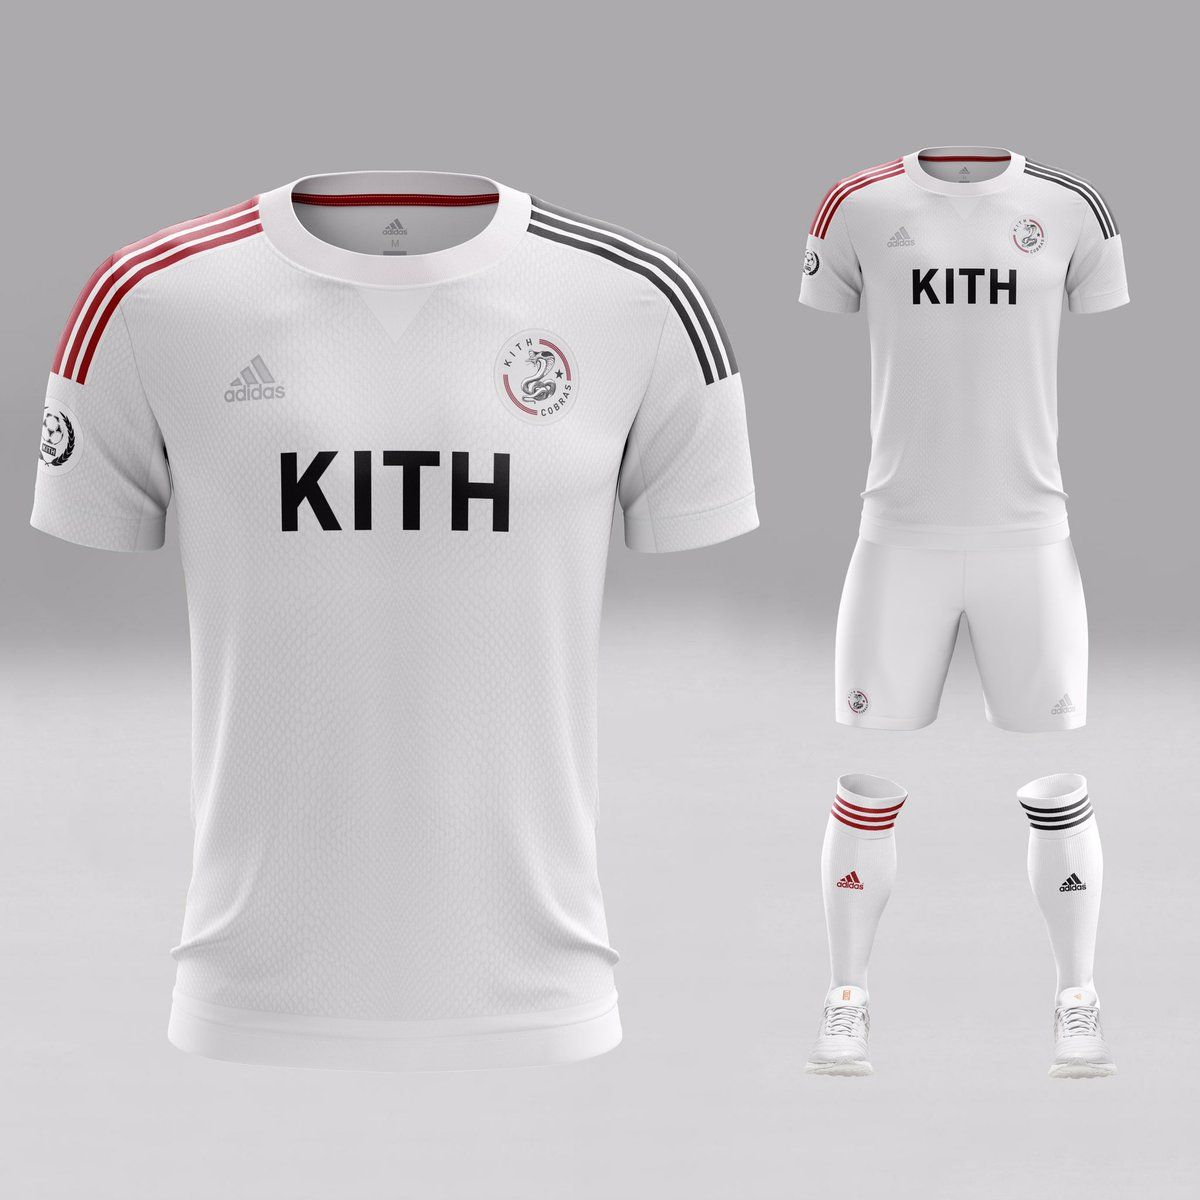 The new Adidas x Kith football kits boast extraordinary unique designs. 000c43d93